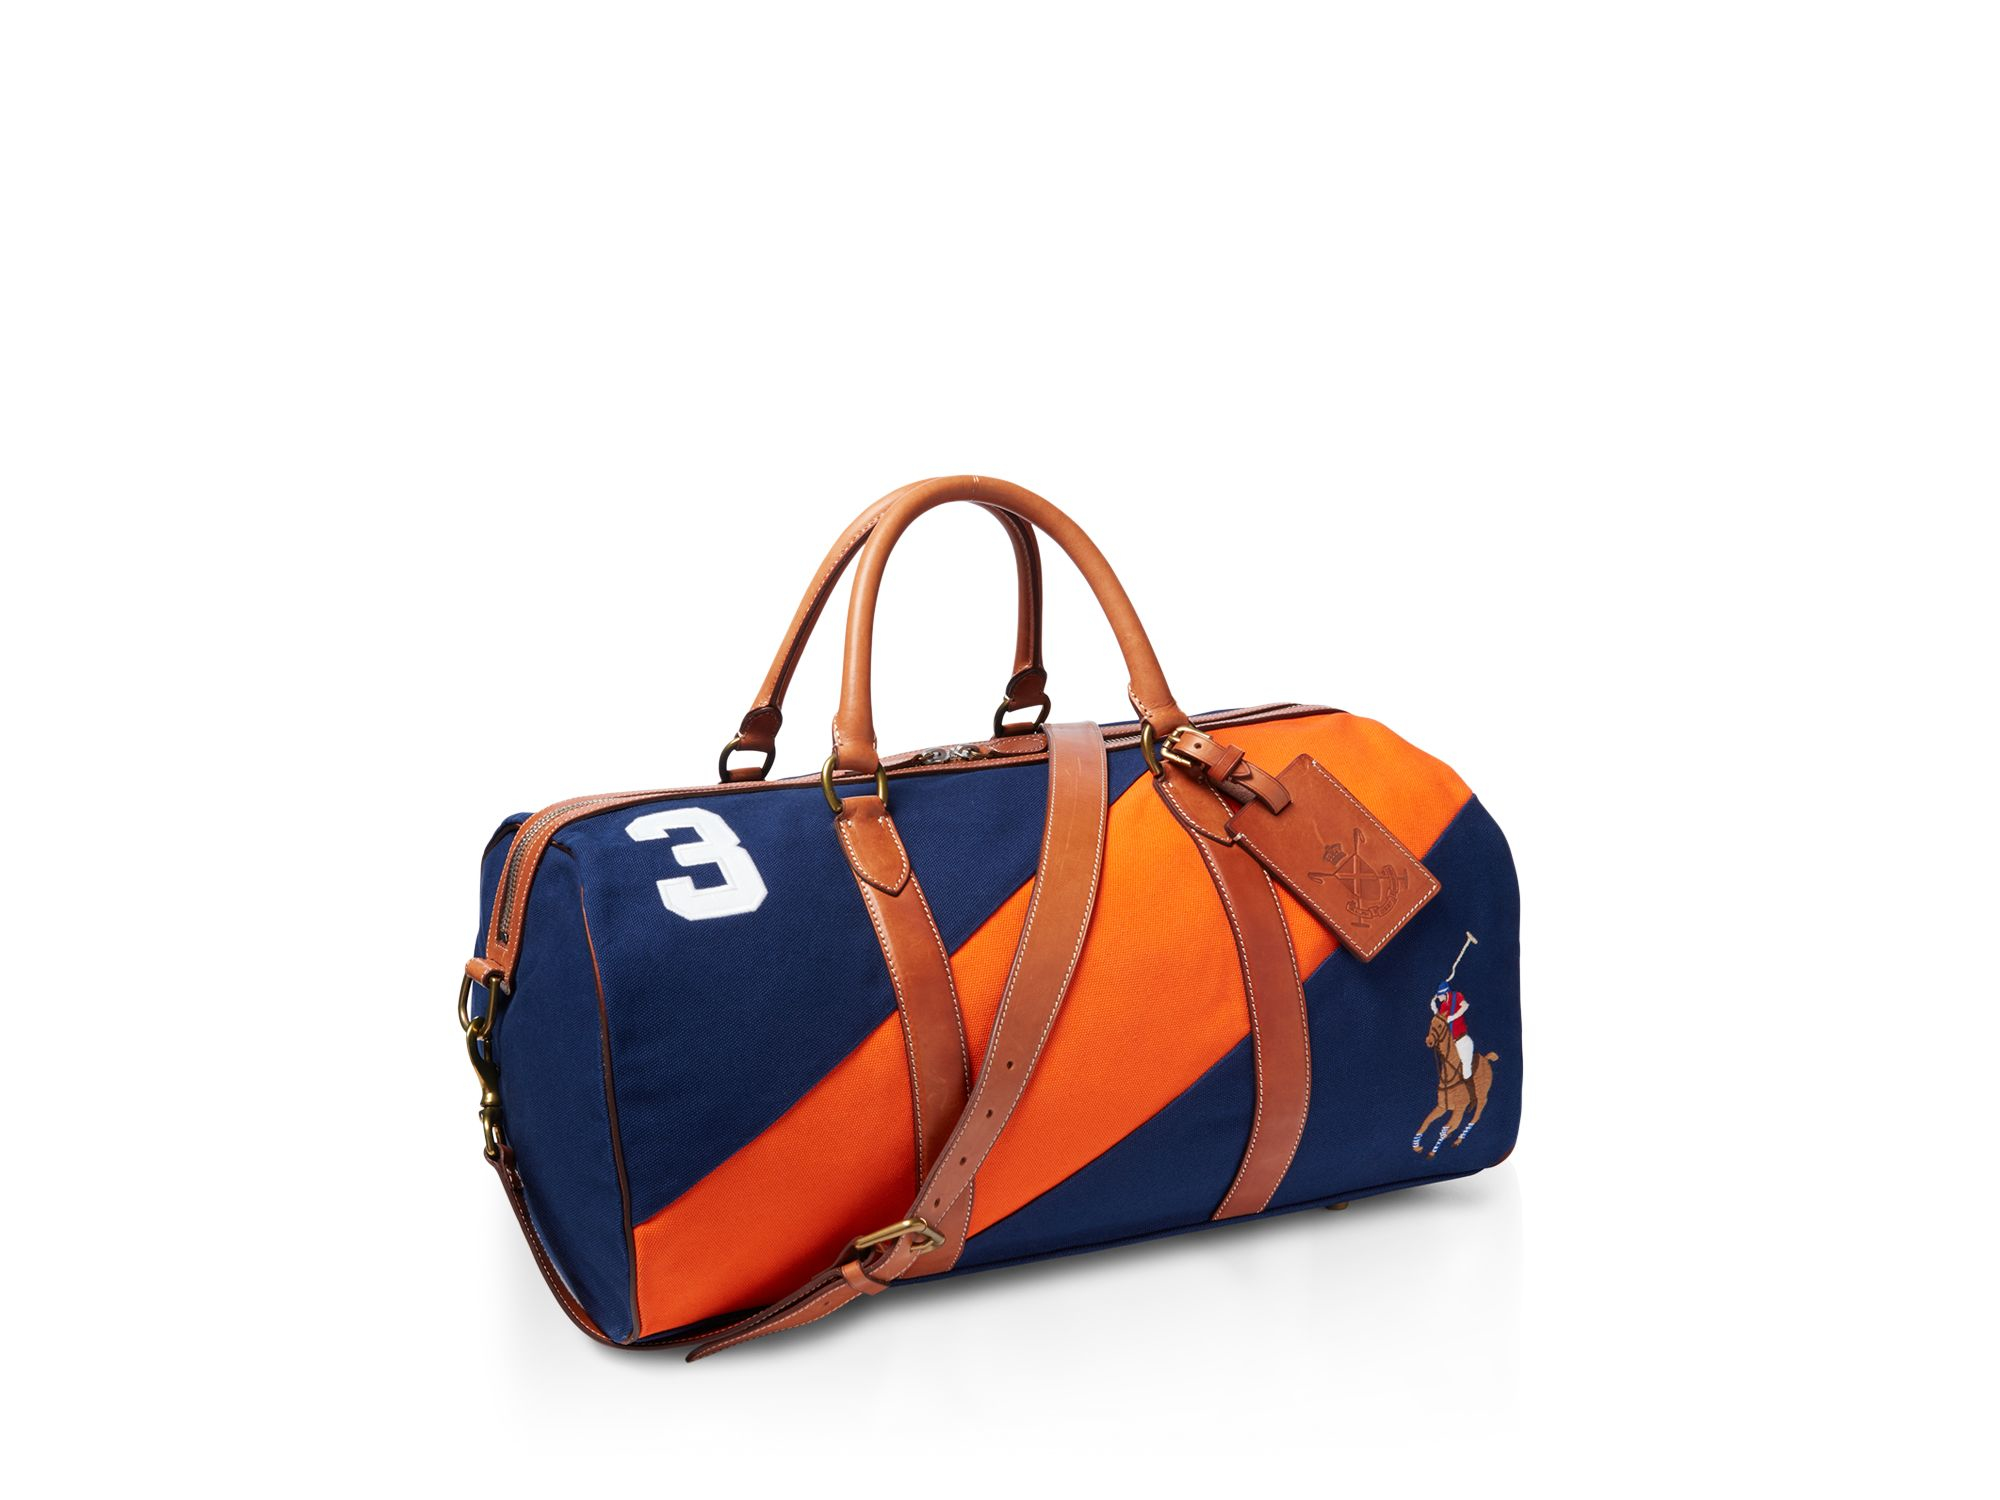 Ralph lauren Polo Canvas Blackwatch Tote in Orange (Navy/Orange) | Lyst